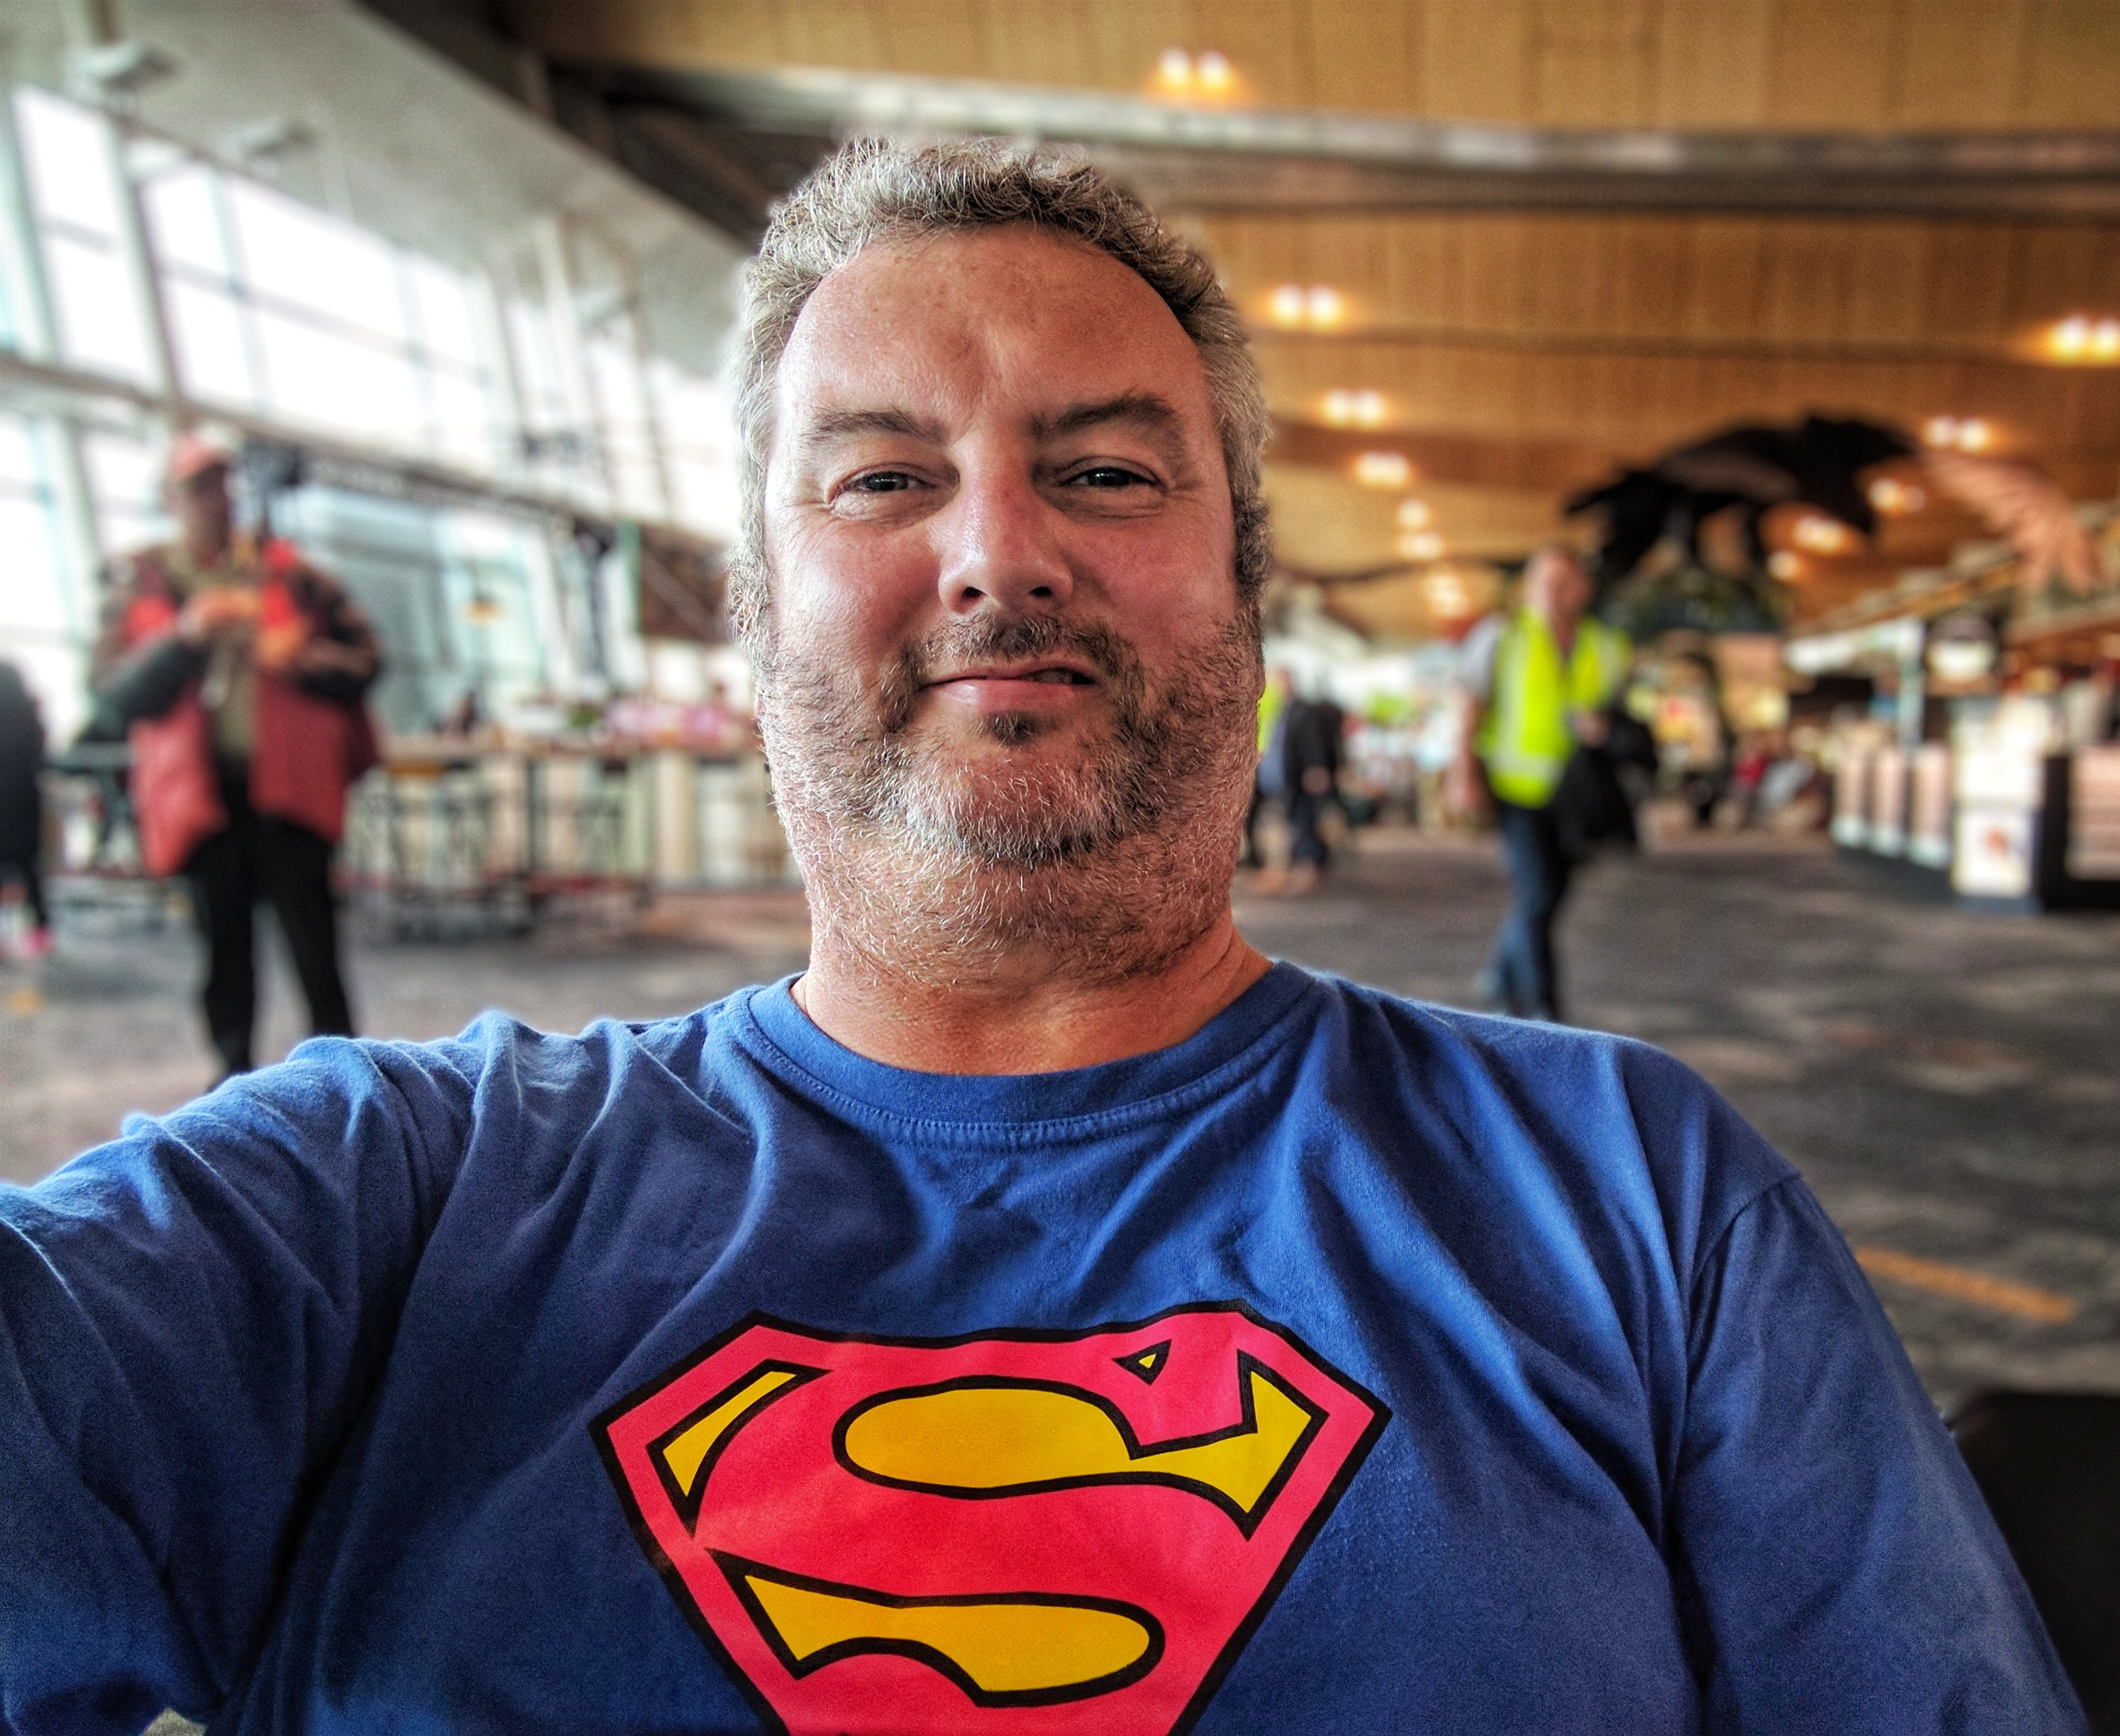 Mike in his Superman t-shirt at Wellington Airport